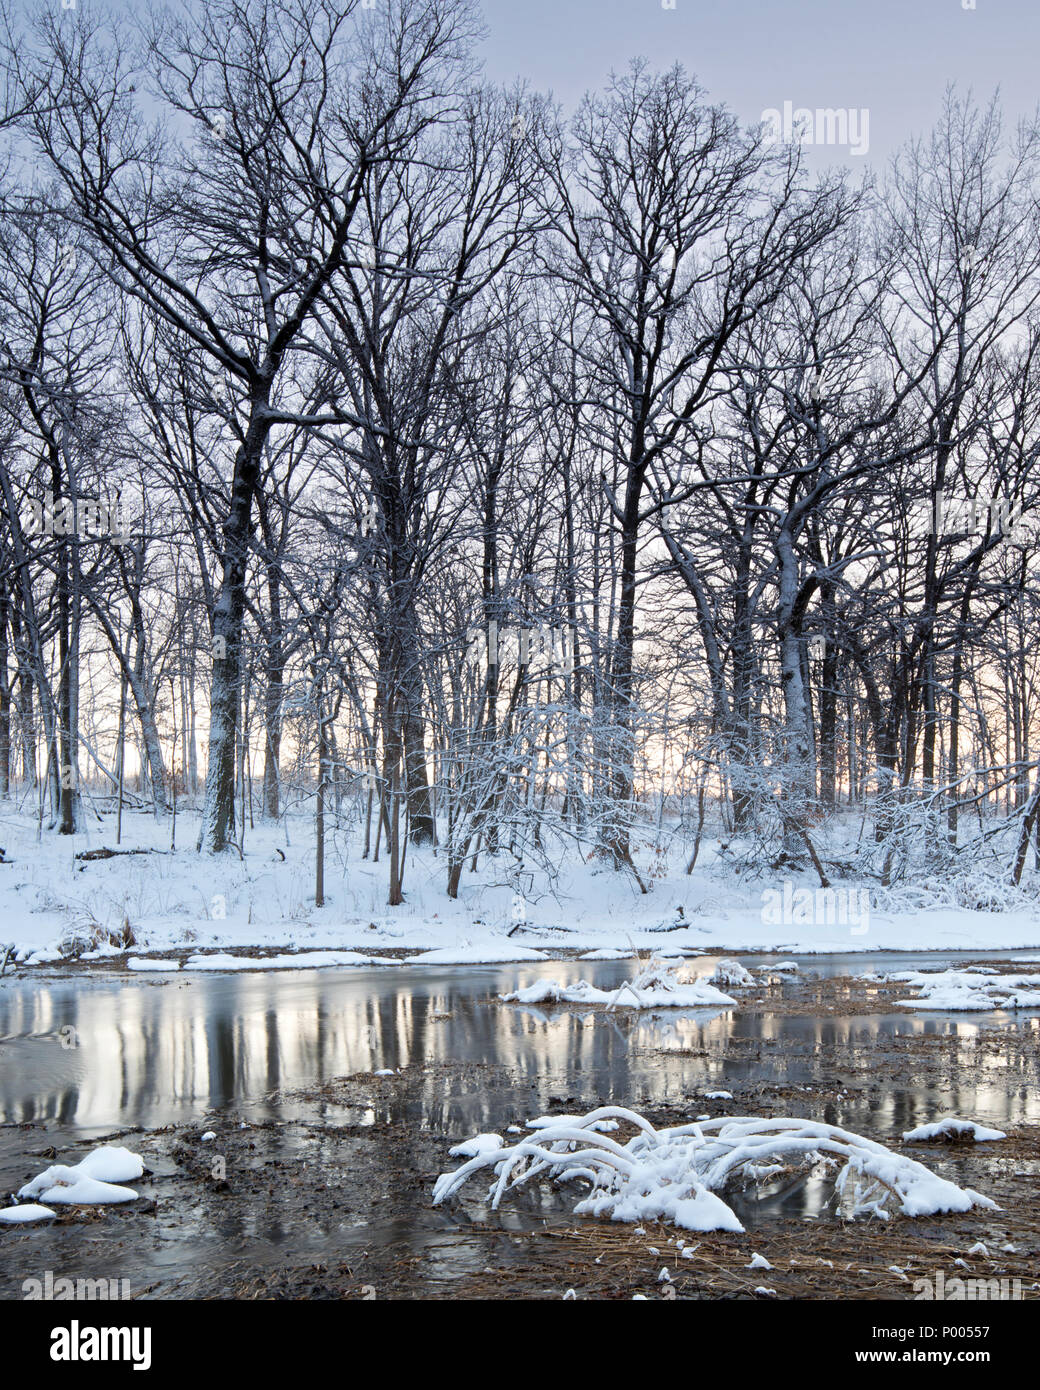 Willoway Brook winds its way thought a winter twilight landscape at The Morton Arboretum in Lisle, Illinois. - Stock Image